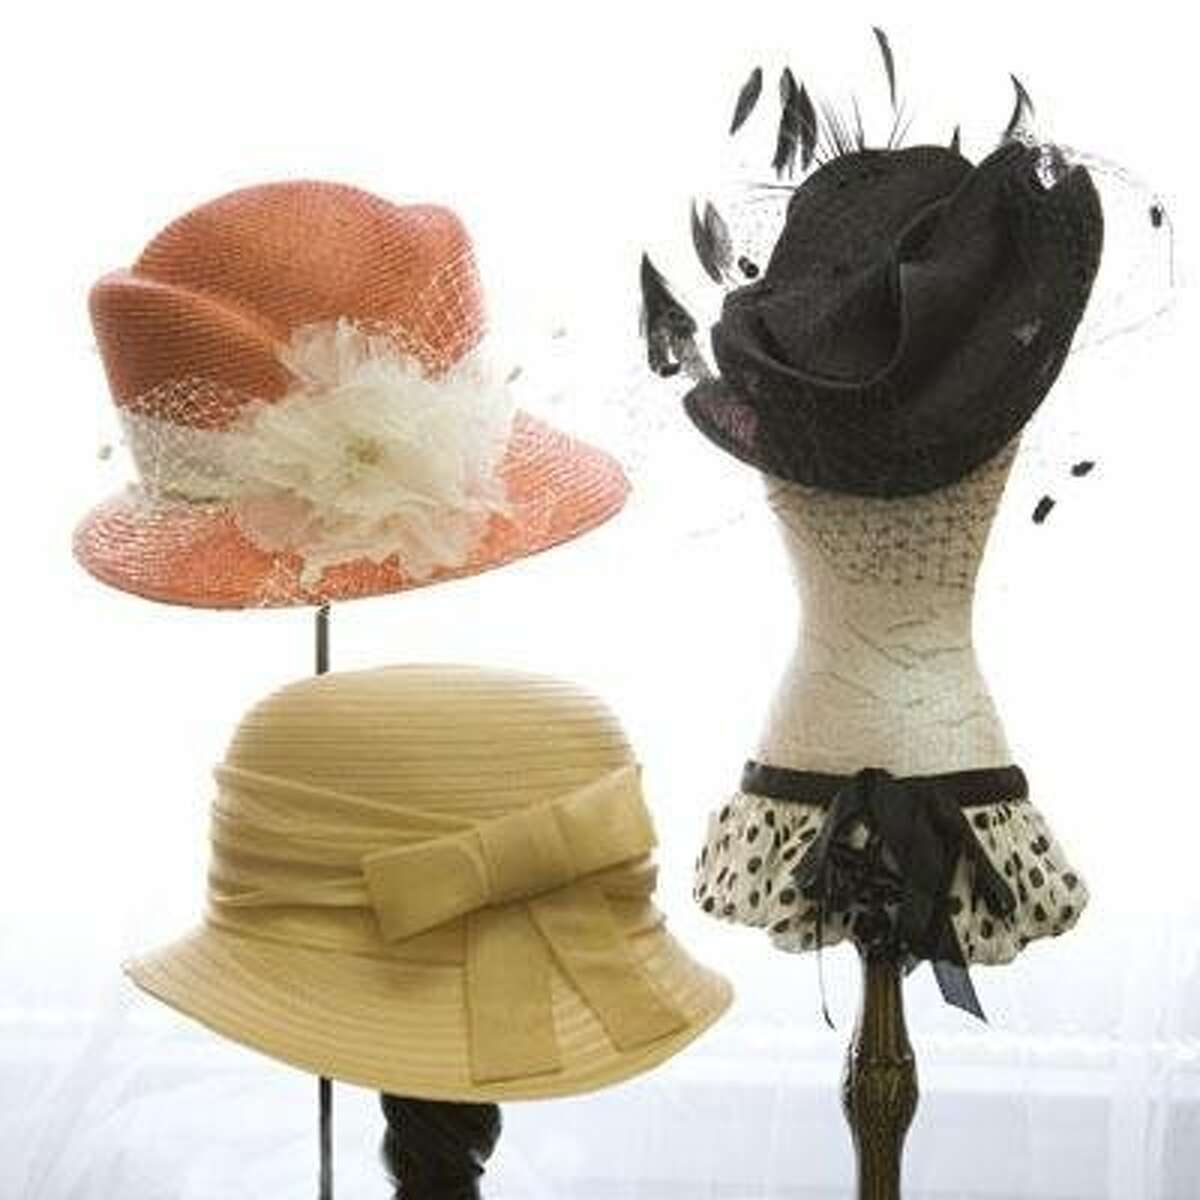 Join The Hound for a trunk show featuring Paul's Hat Works and Hats on Post, April 26, 2016